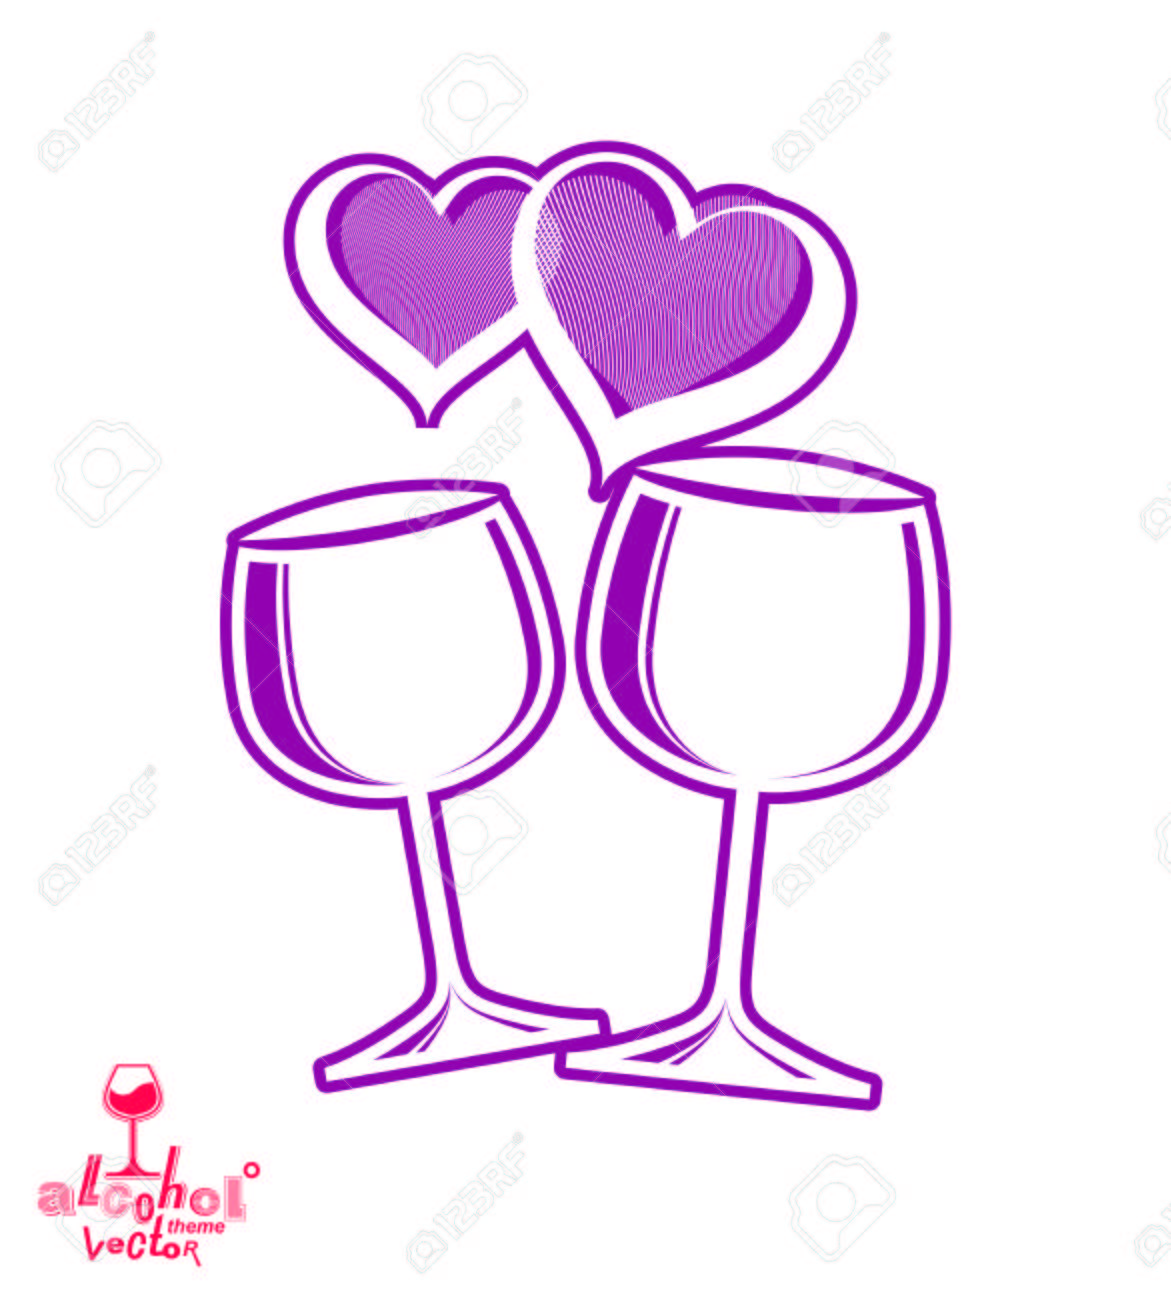 Artistic Illustration Of Wineglasses With Two Elegant Loving Hearts ...